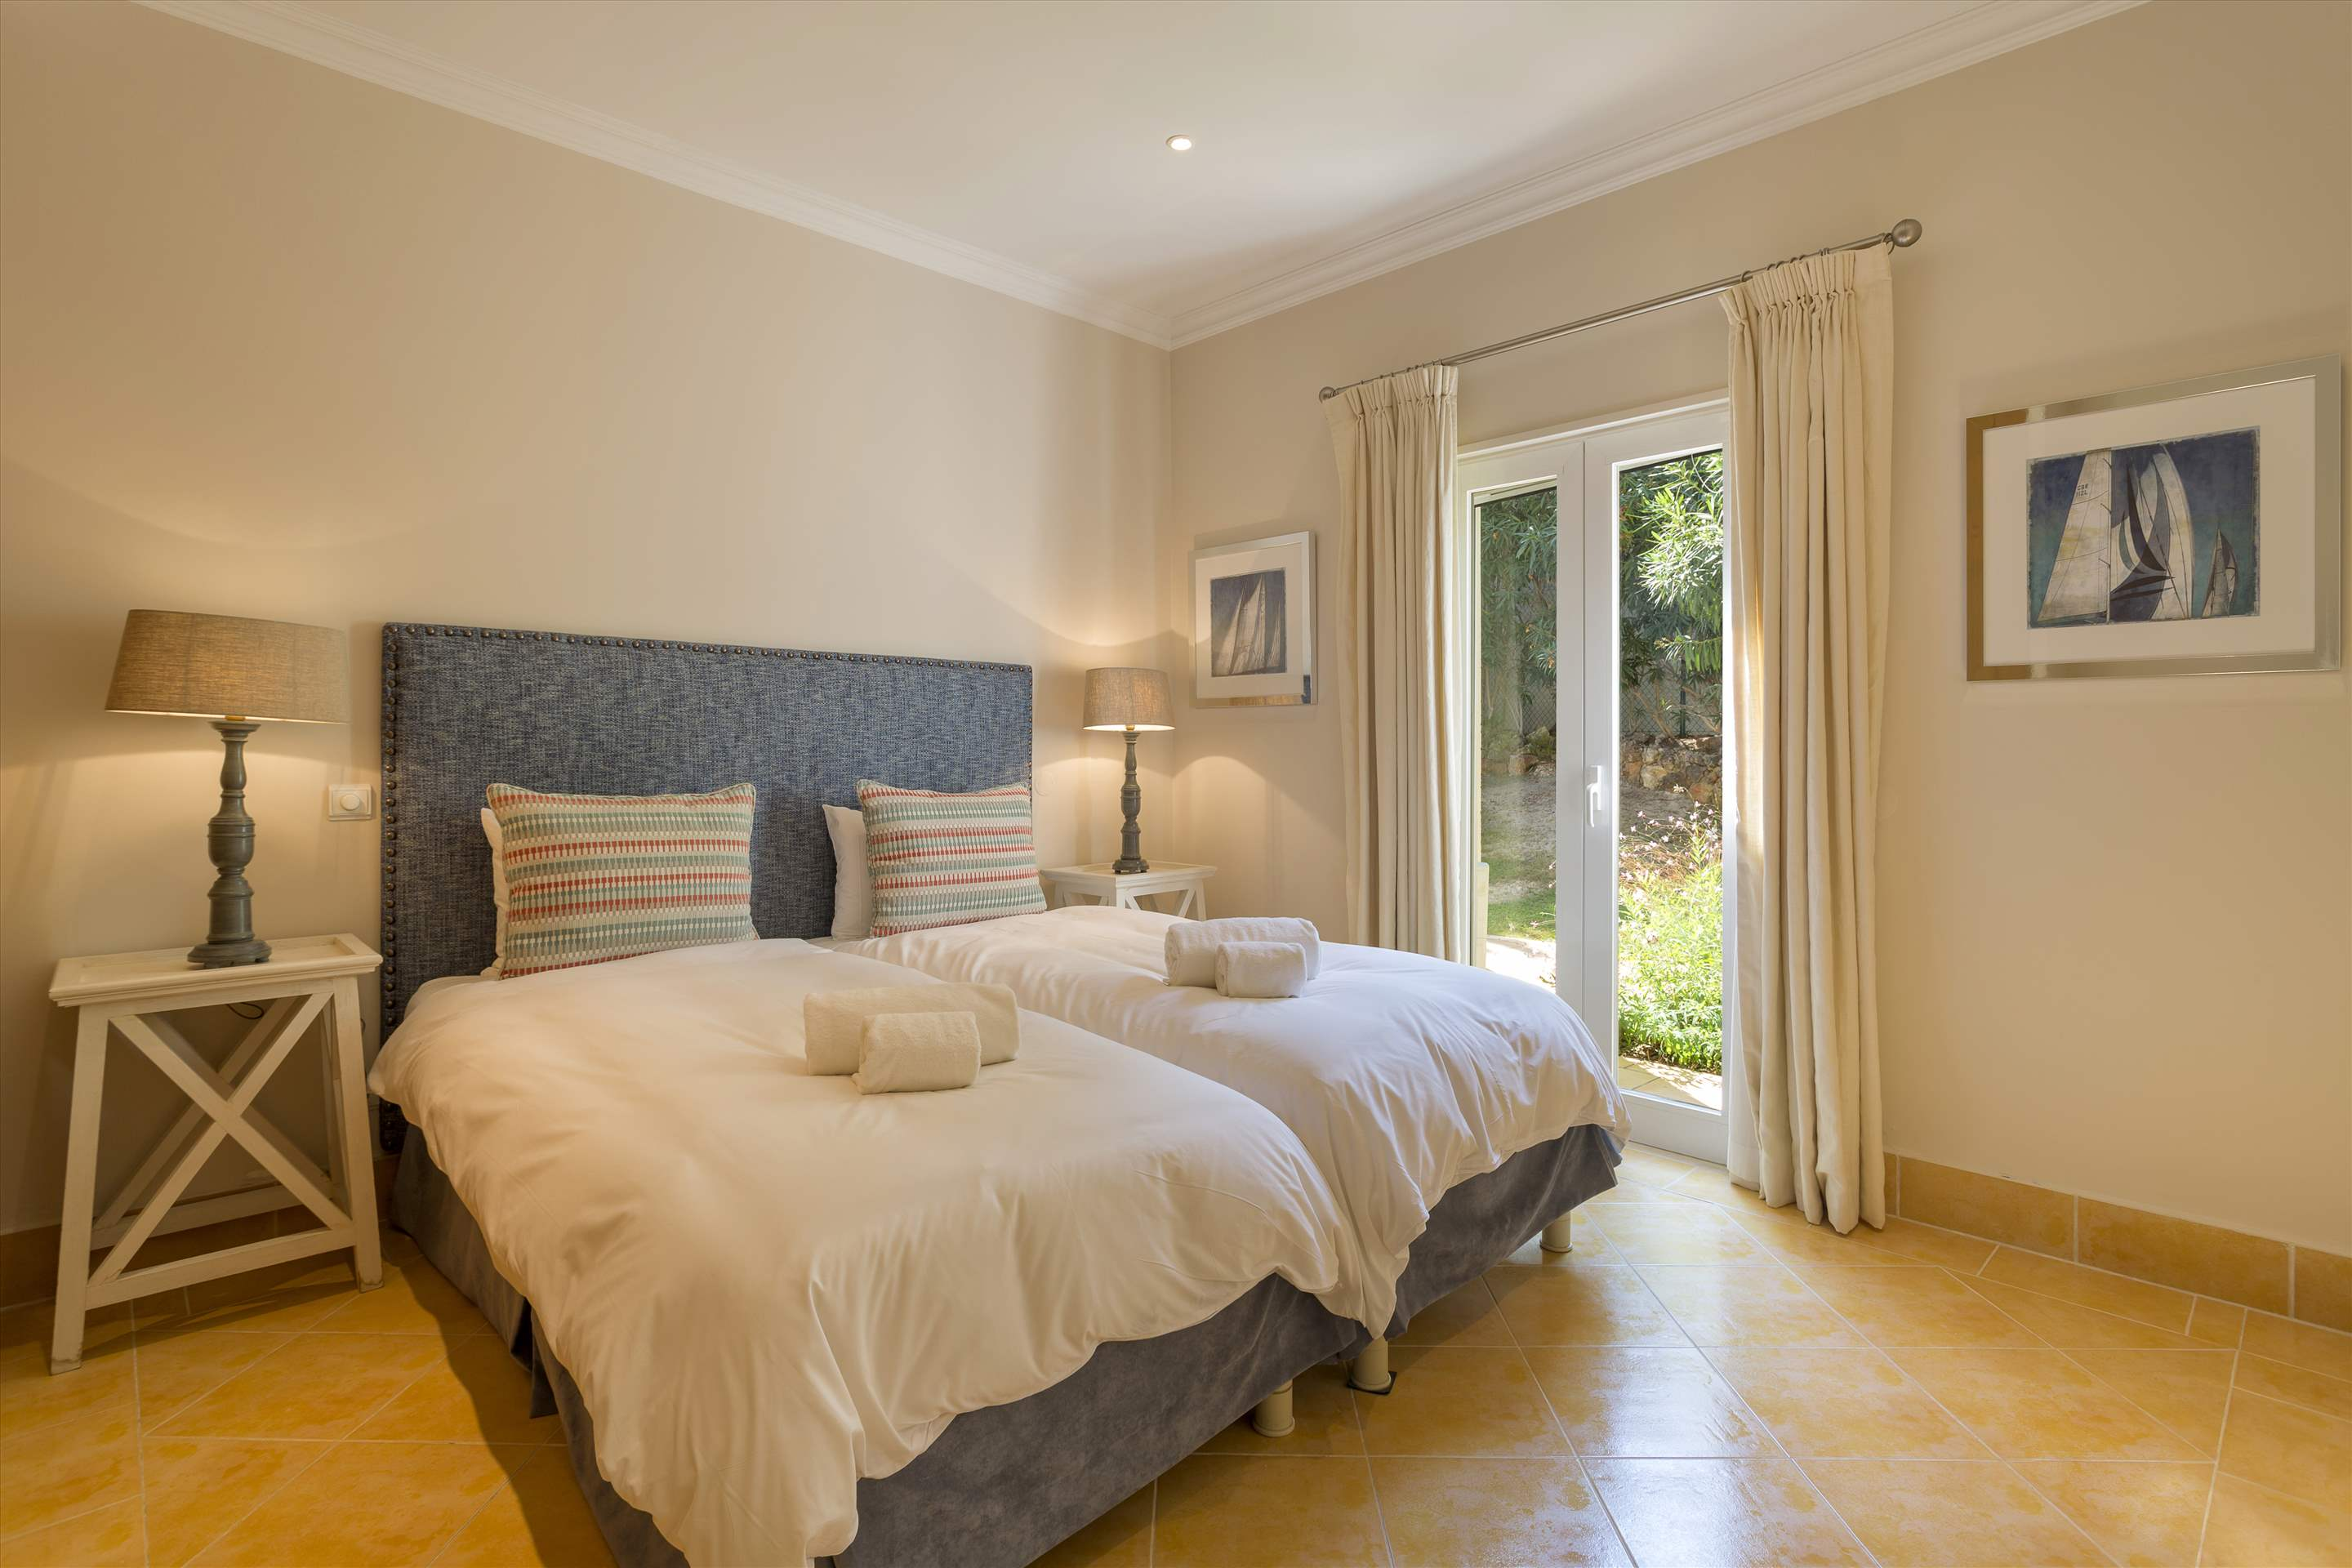 Villa Liza, 4 bedroom villa in Vale do Lobo, Algarve Photo #20